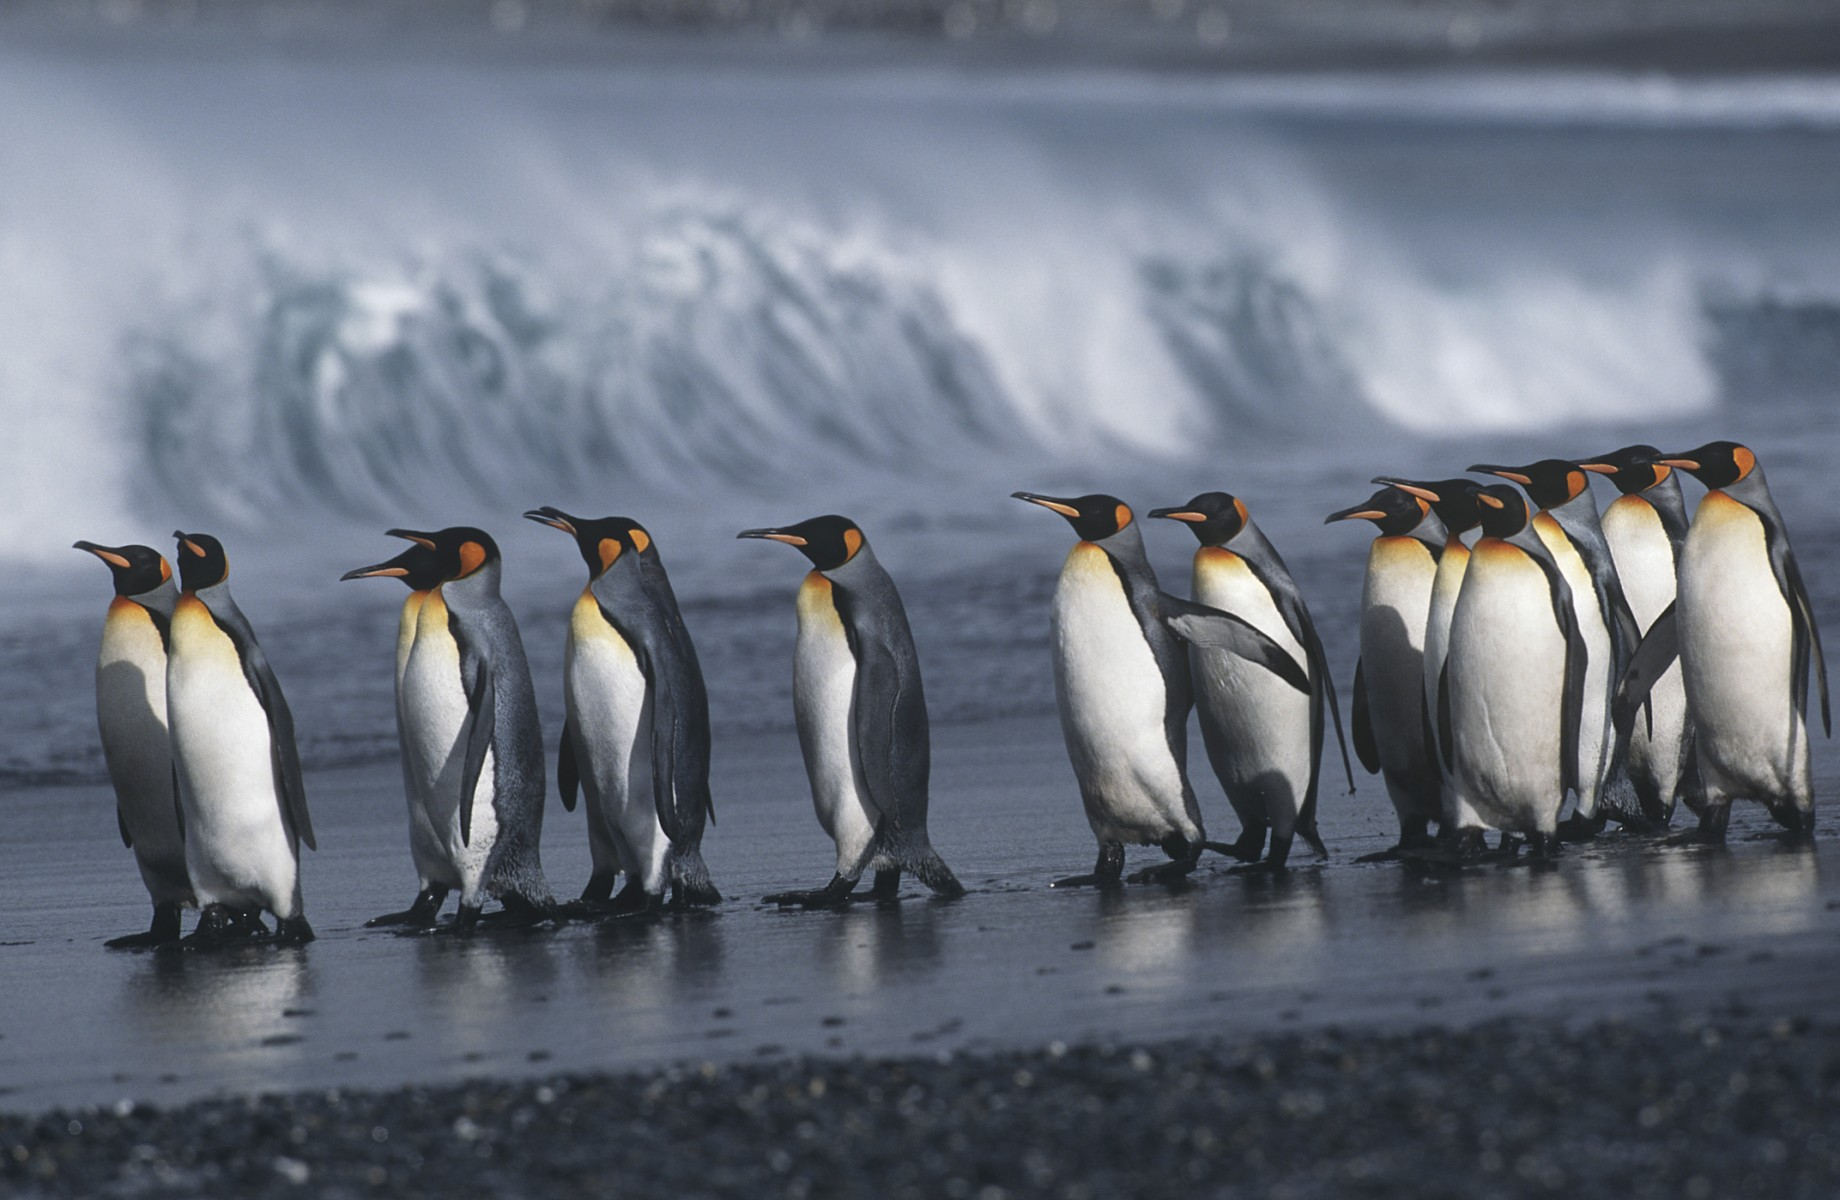 penguins marching